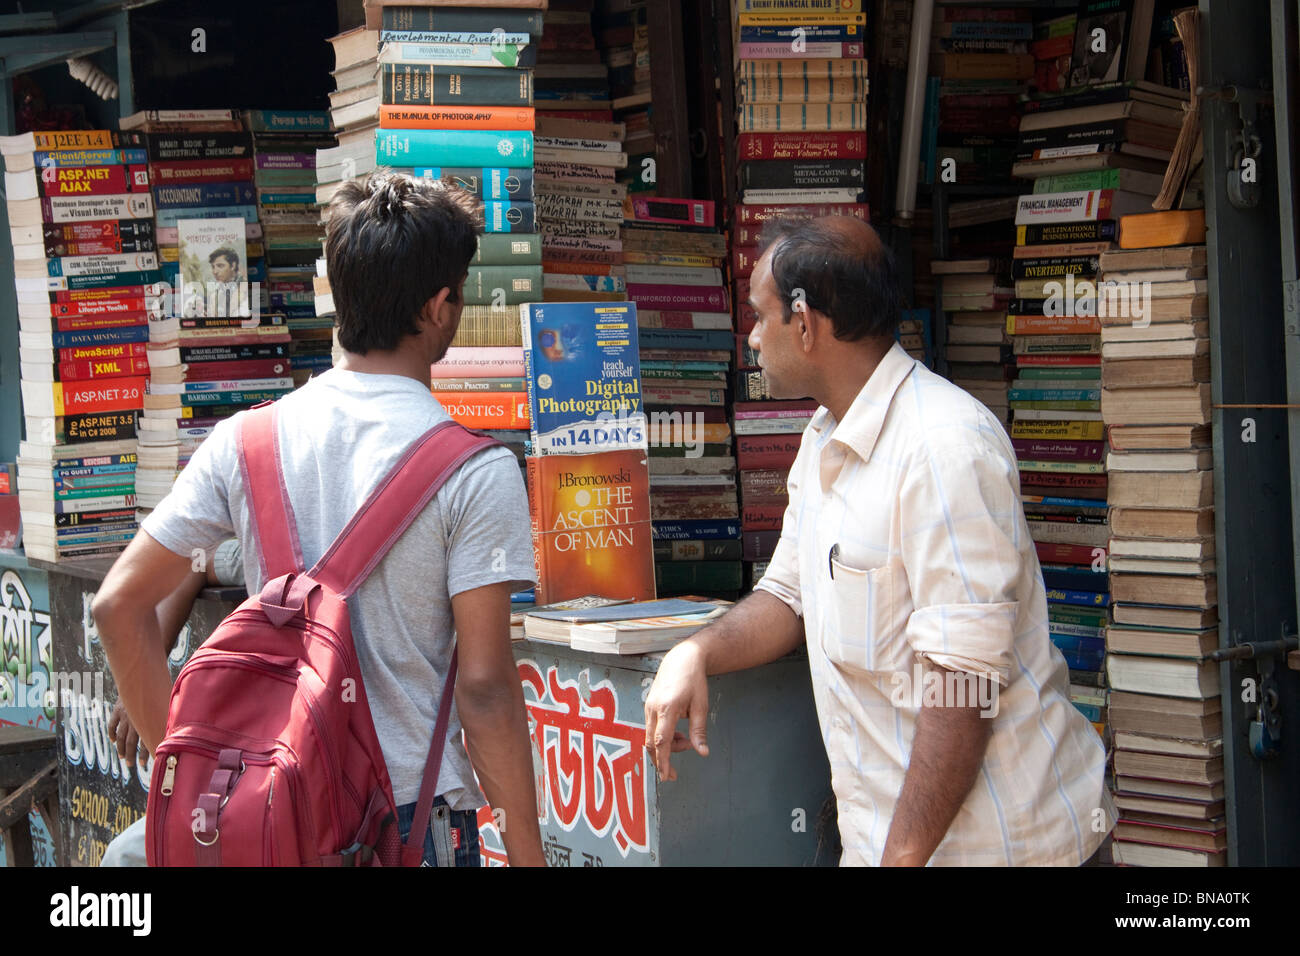 A buyer and seller at a book stall on College Street in Kolkata (Calcutta), West Bengal, India. - Stock Image